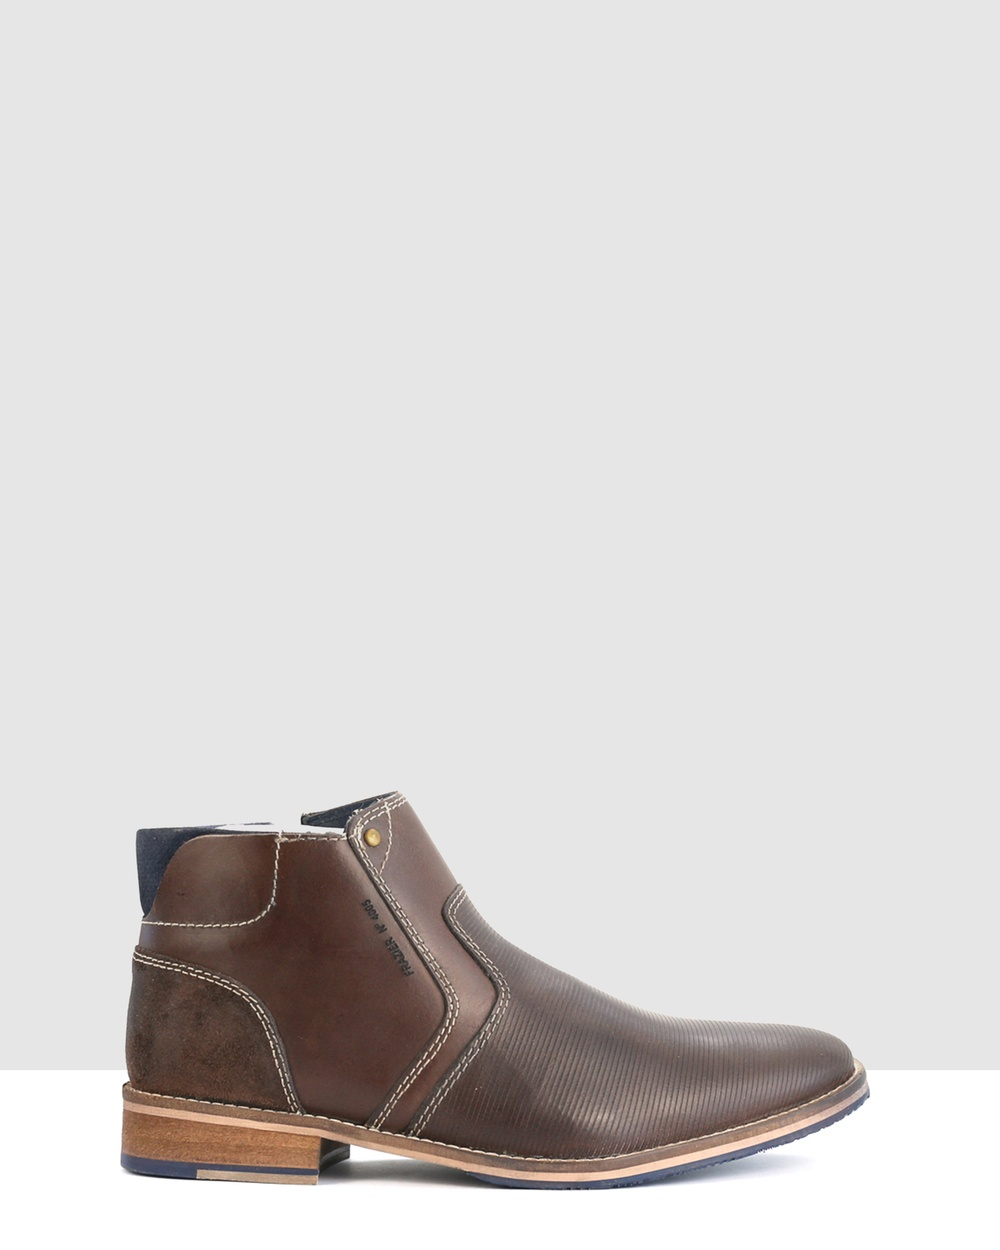 Acton Frazier Boots Brown